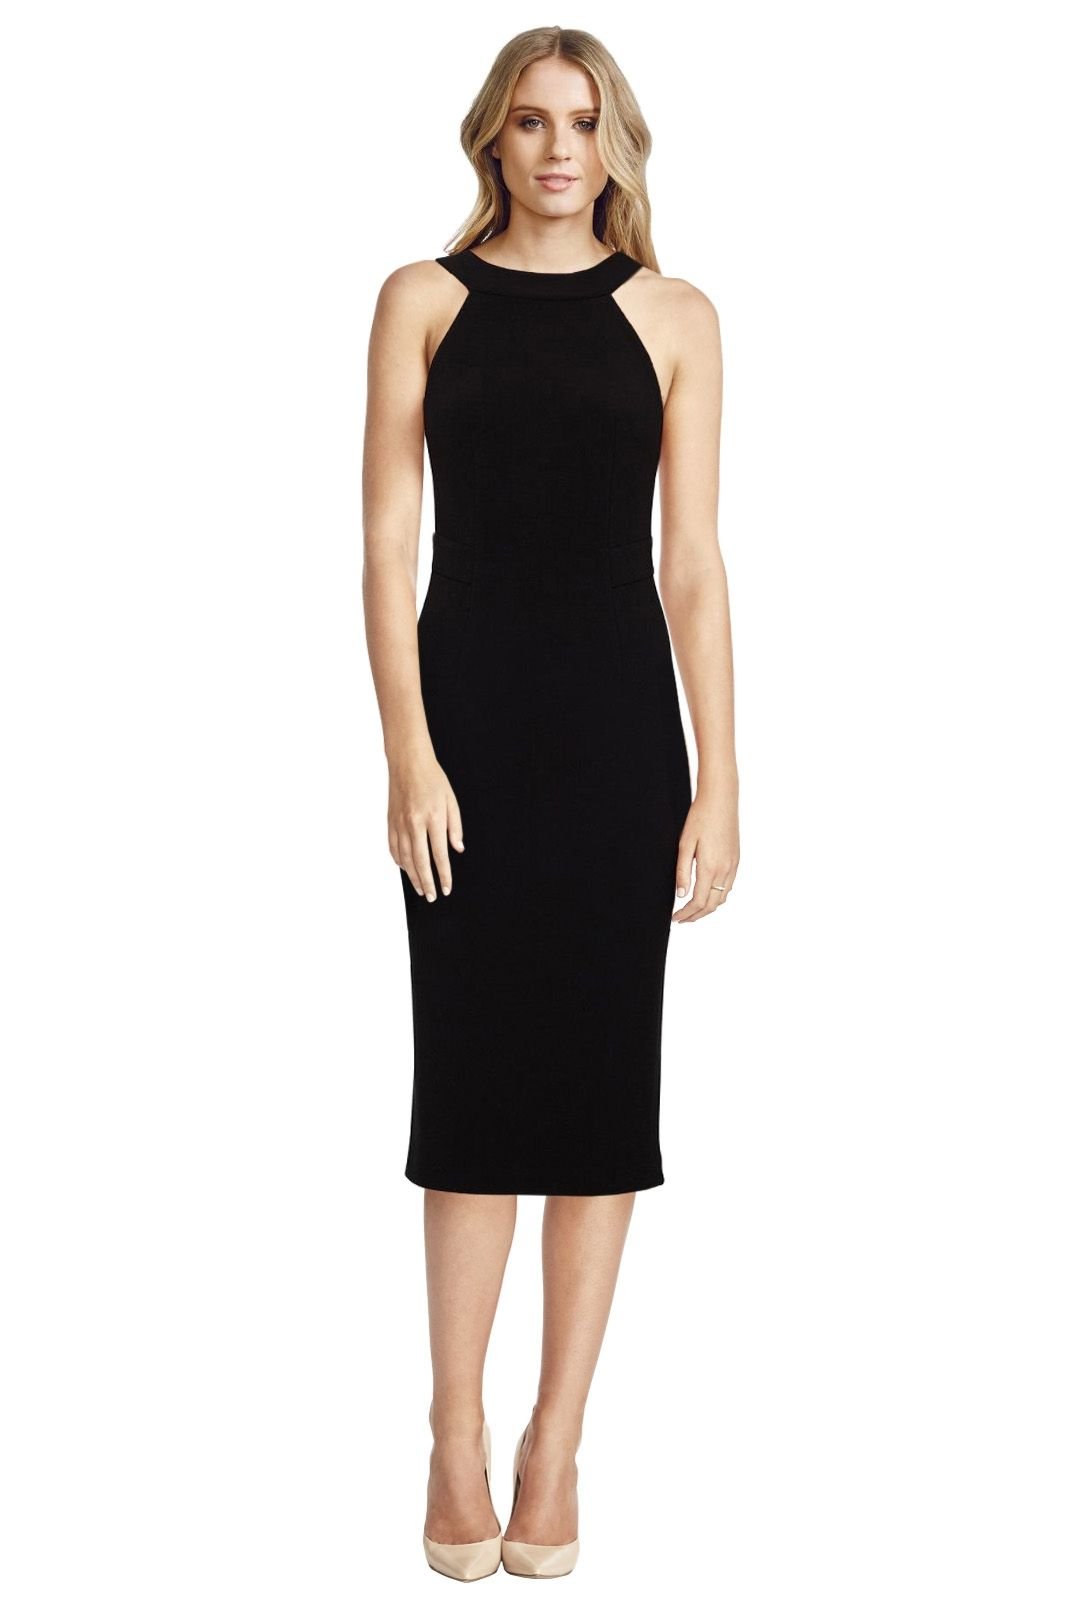 Dion Lee Line II - Backless Dress - Black - Front